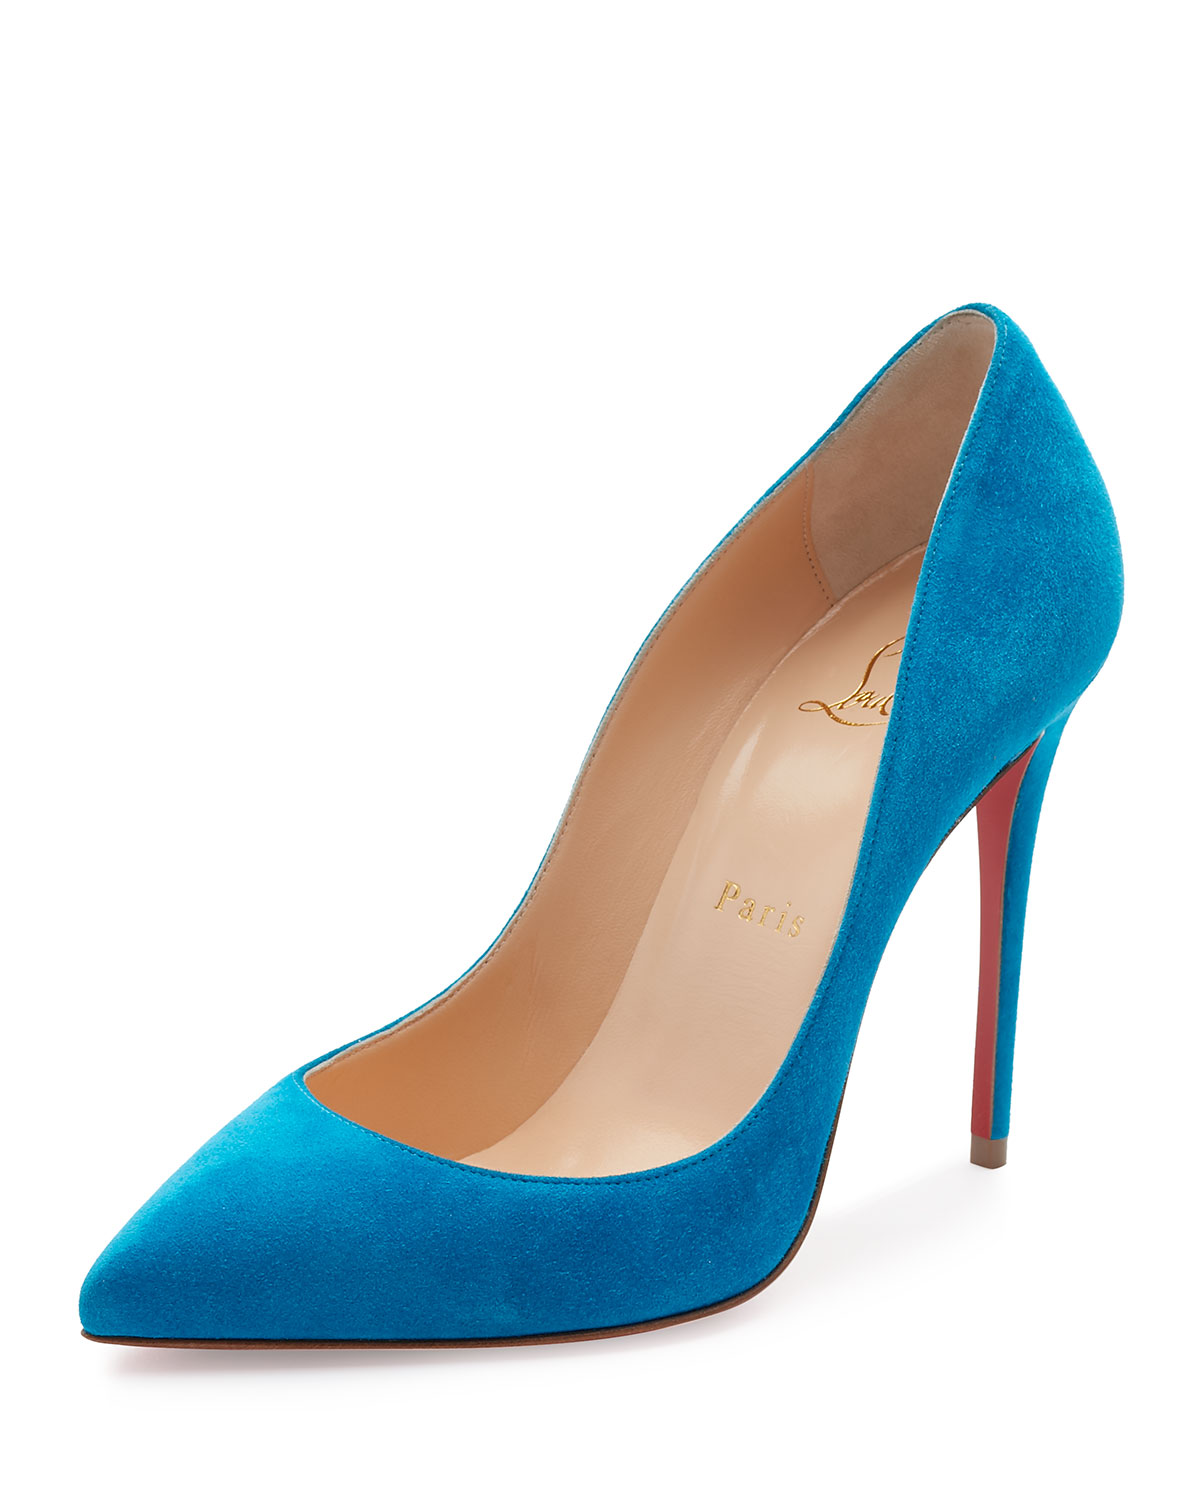 20ed89c6db0 Christian Louboutin Pigalle Follies Suede 100mm Red Sole Pump ...